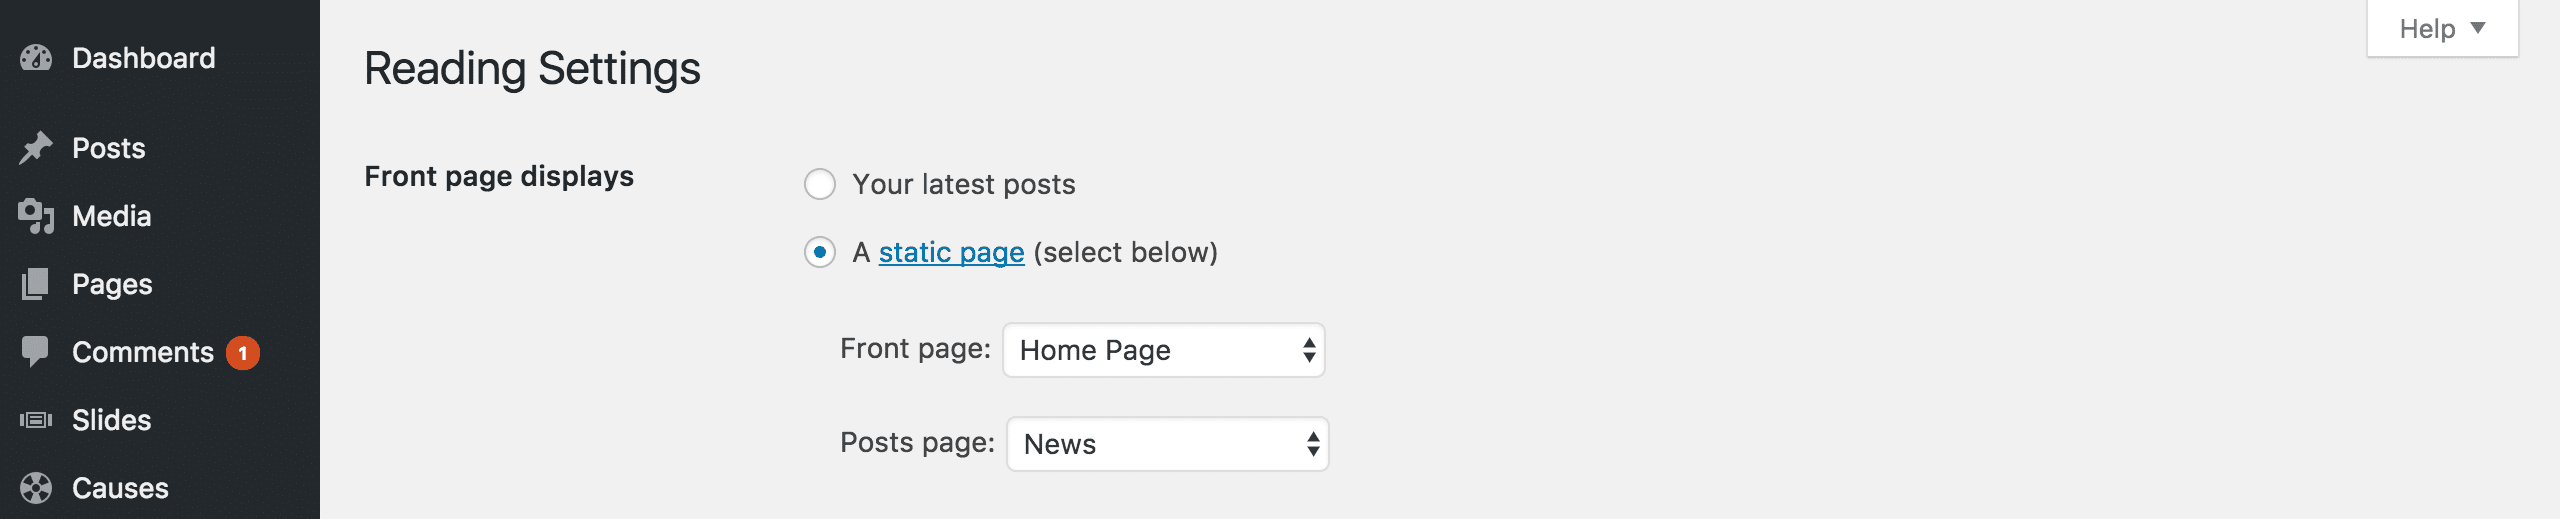 Editing Reading Settings to give your site a static home page.